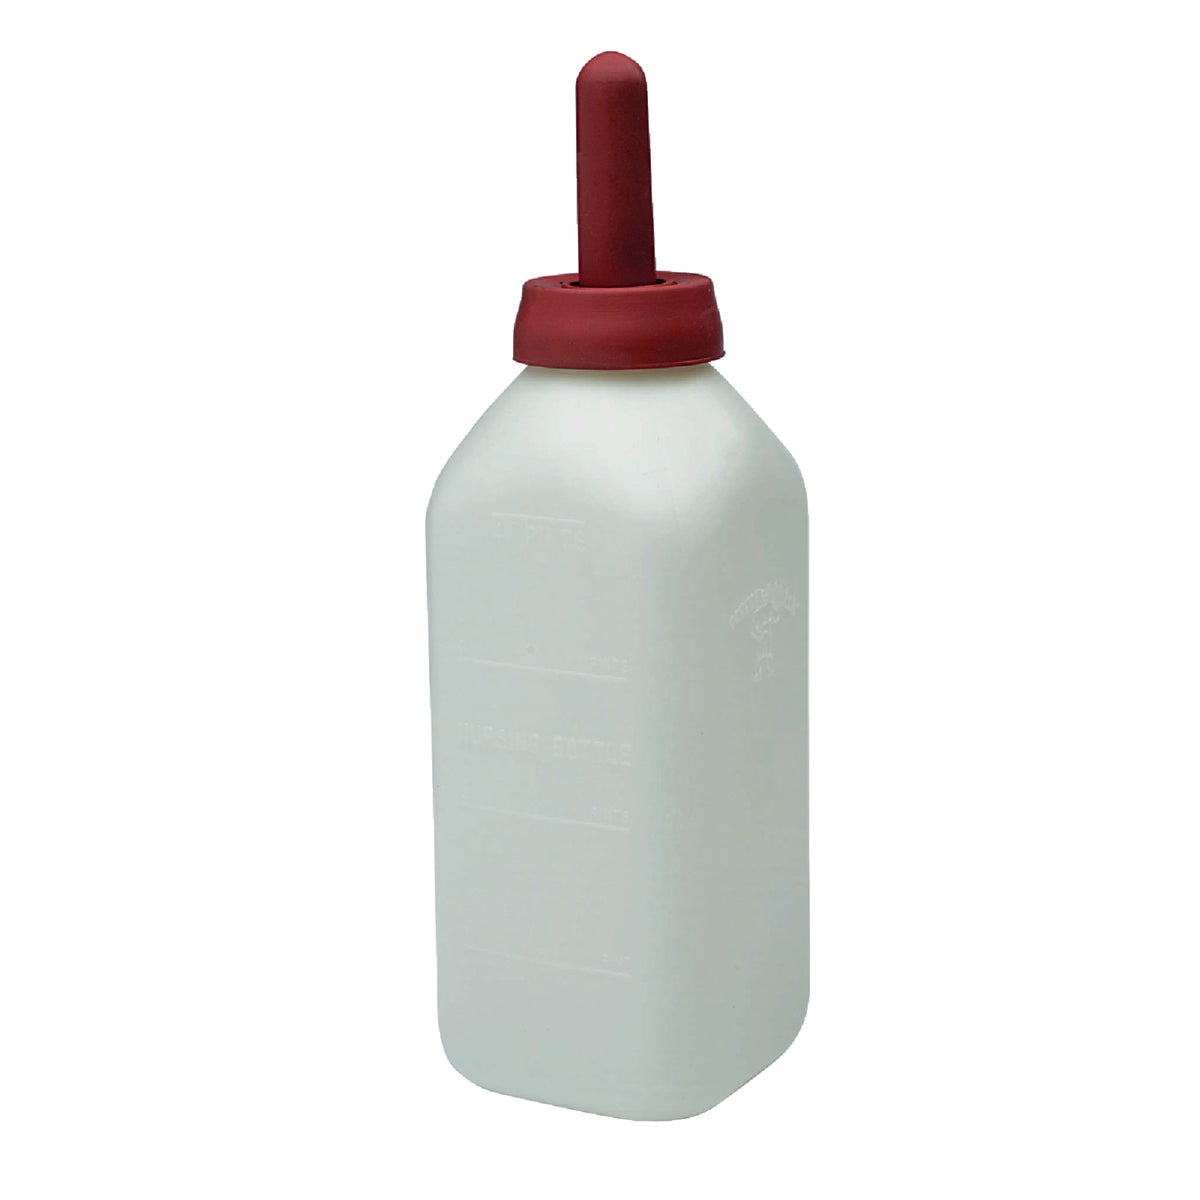 CALF BOTTLE W/NIPPLE - 9812 by Miller Manufacturing